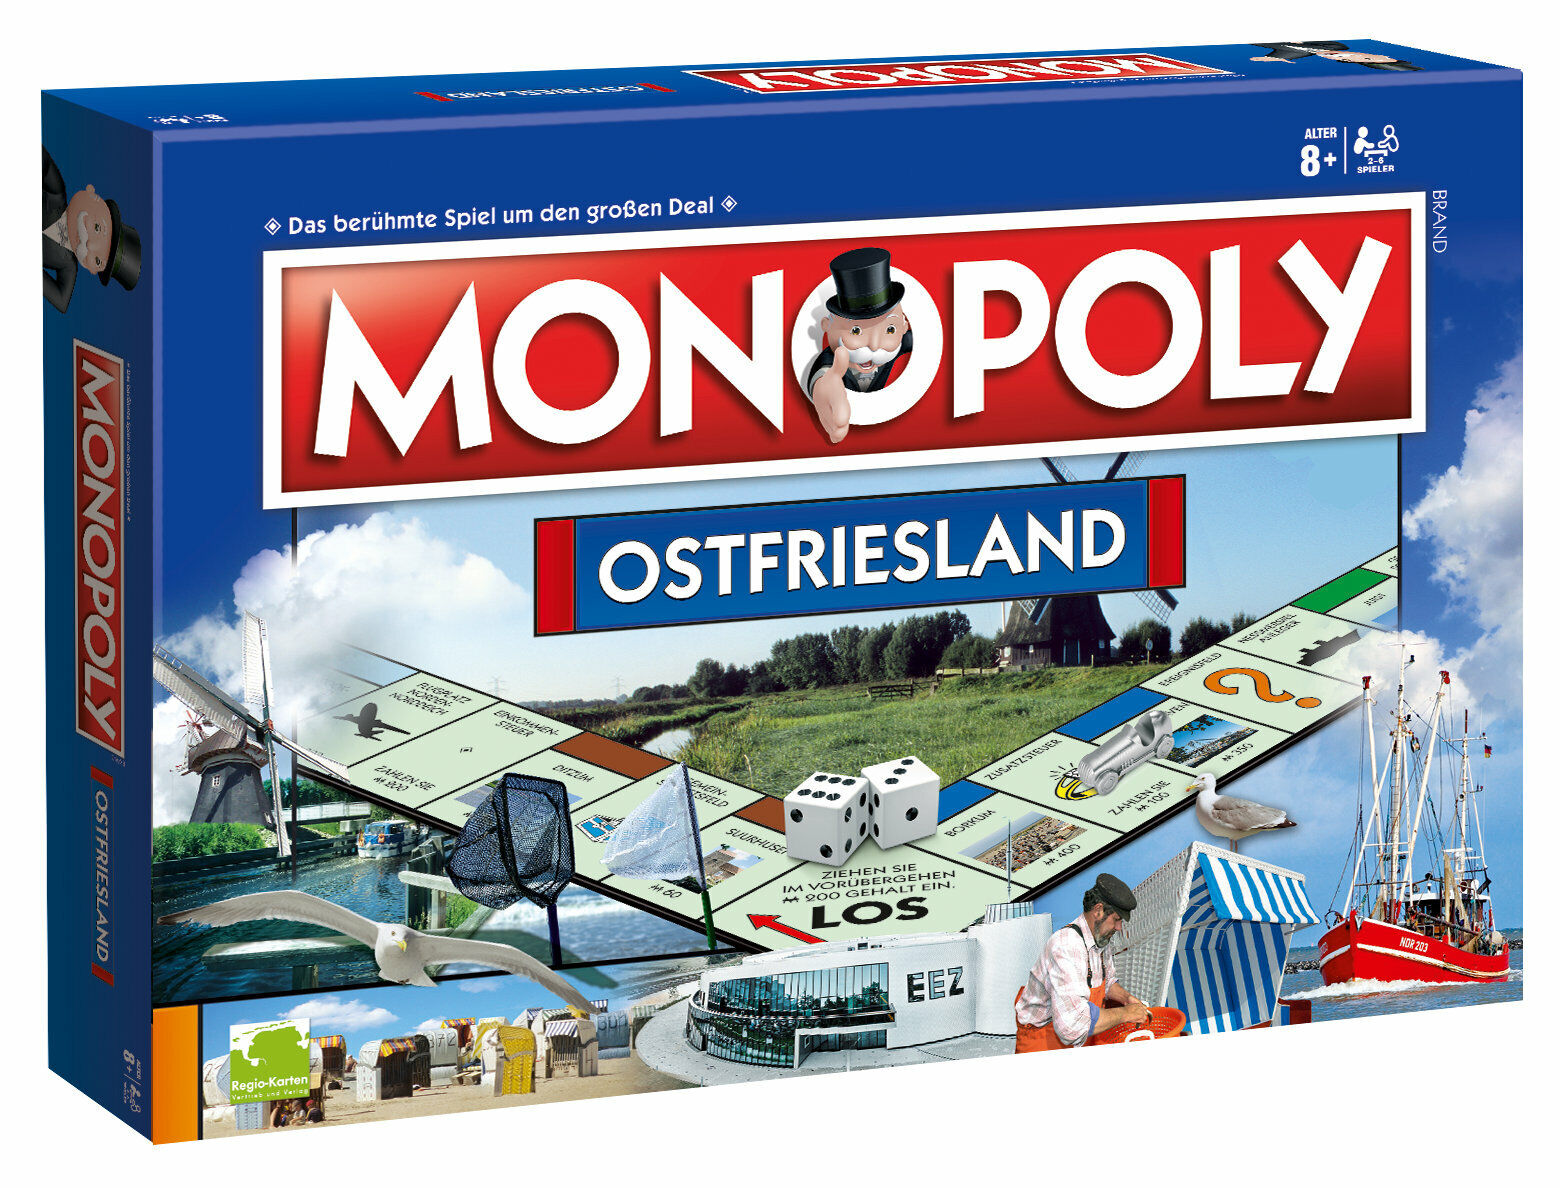 Monopoly East Frisia region edition board game game board game